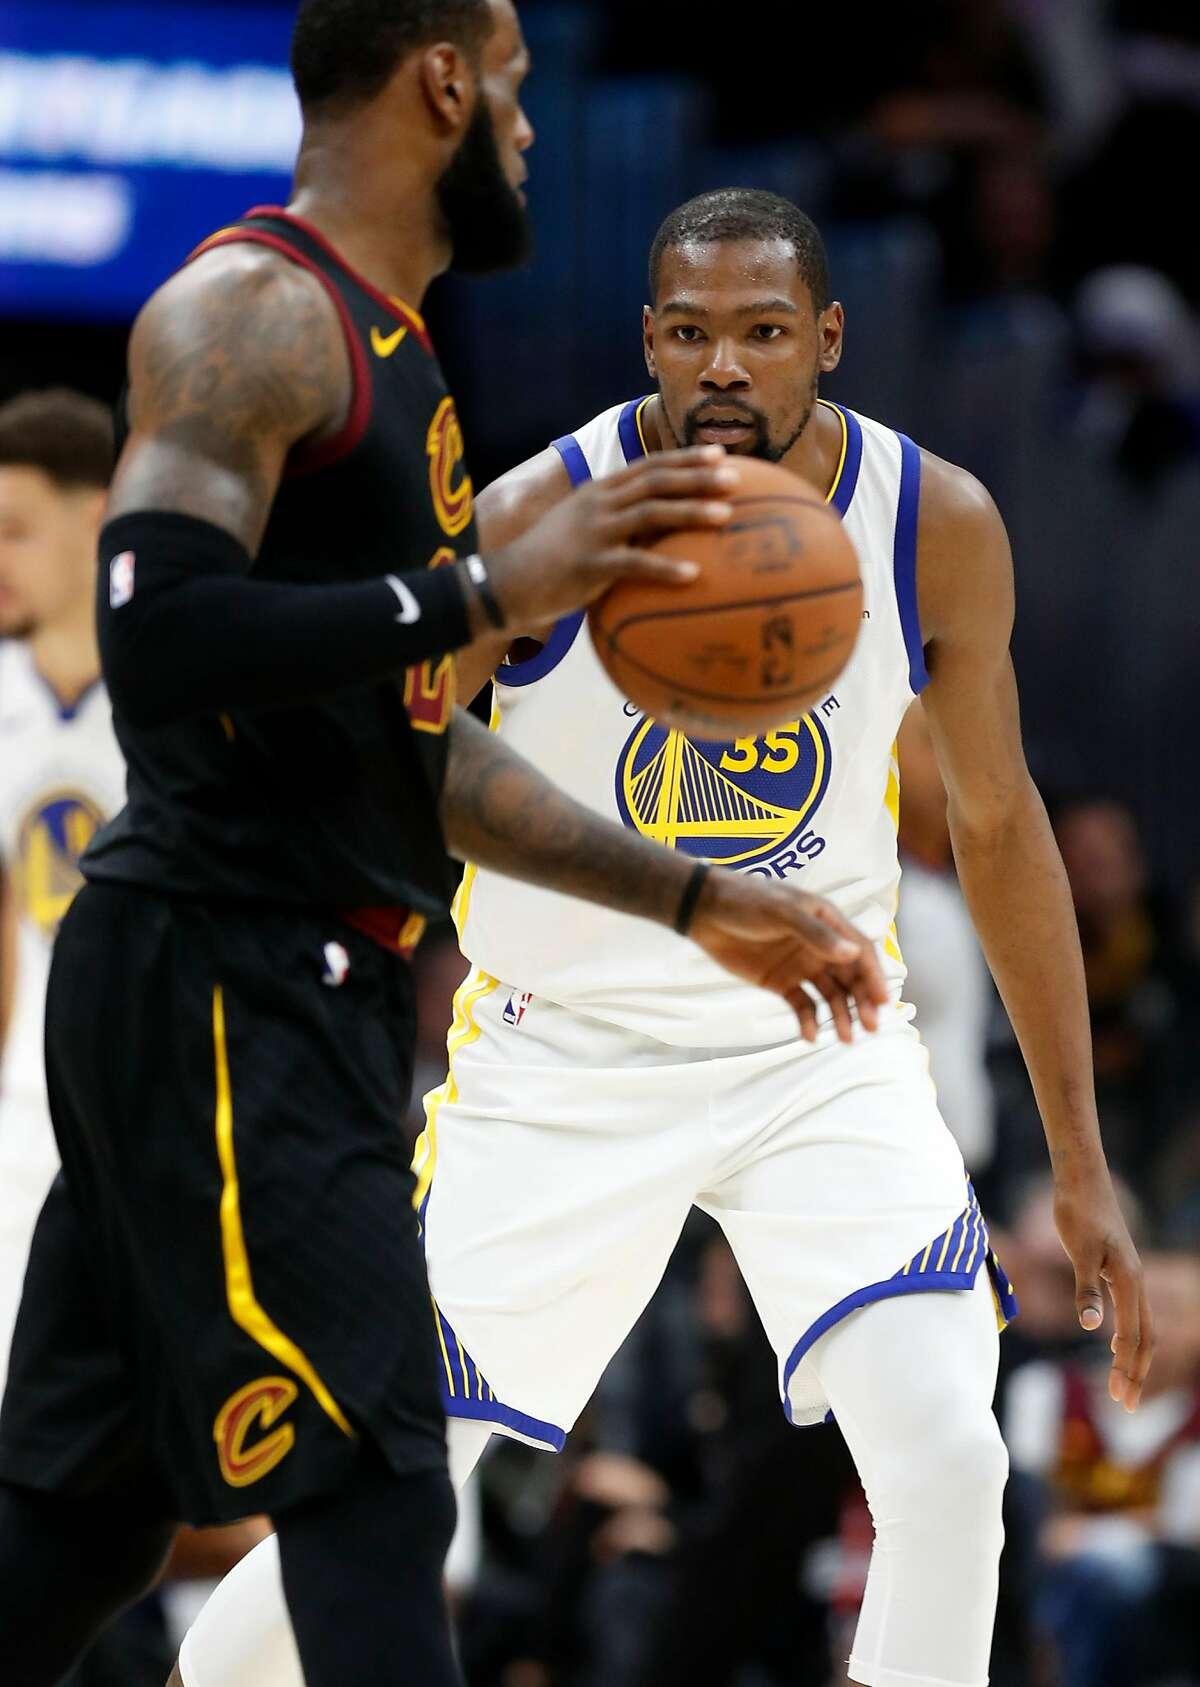 Golden State Warriors' Kevin Durant against Cleveland Cavaliers' LeBron James during Warriors' 110-102 win in Game 3 of the NBA Finals at Quicken Loans Arena in Cleveland, OH on Wednesday, June 6, 2018.